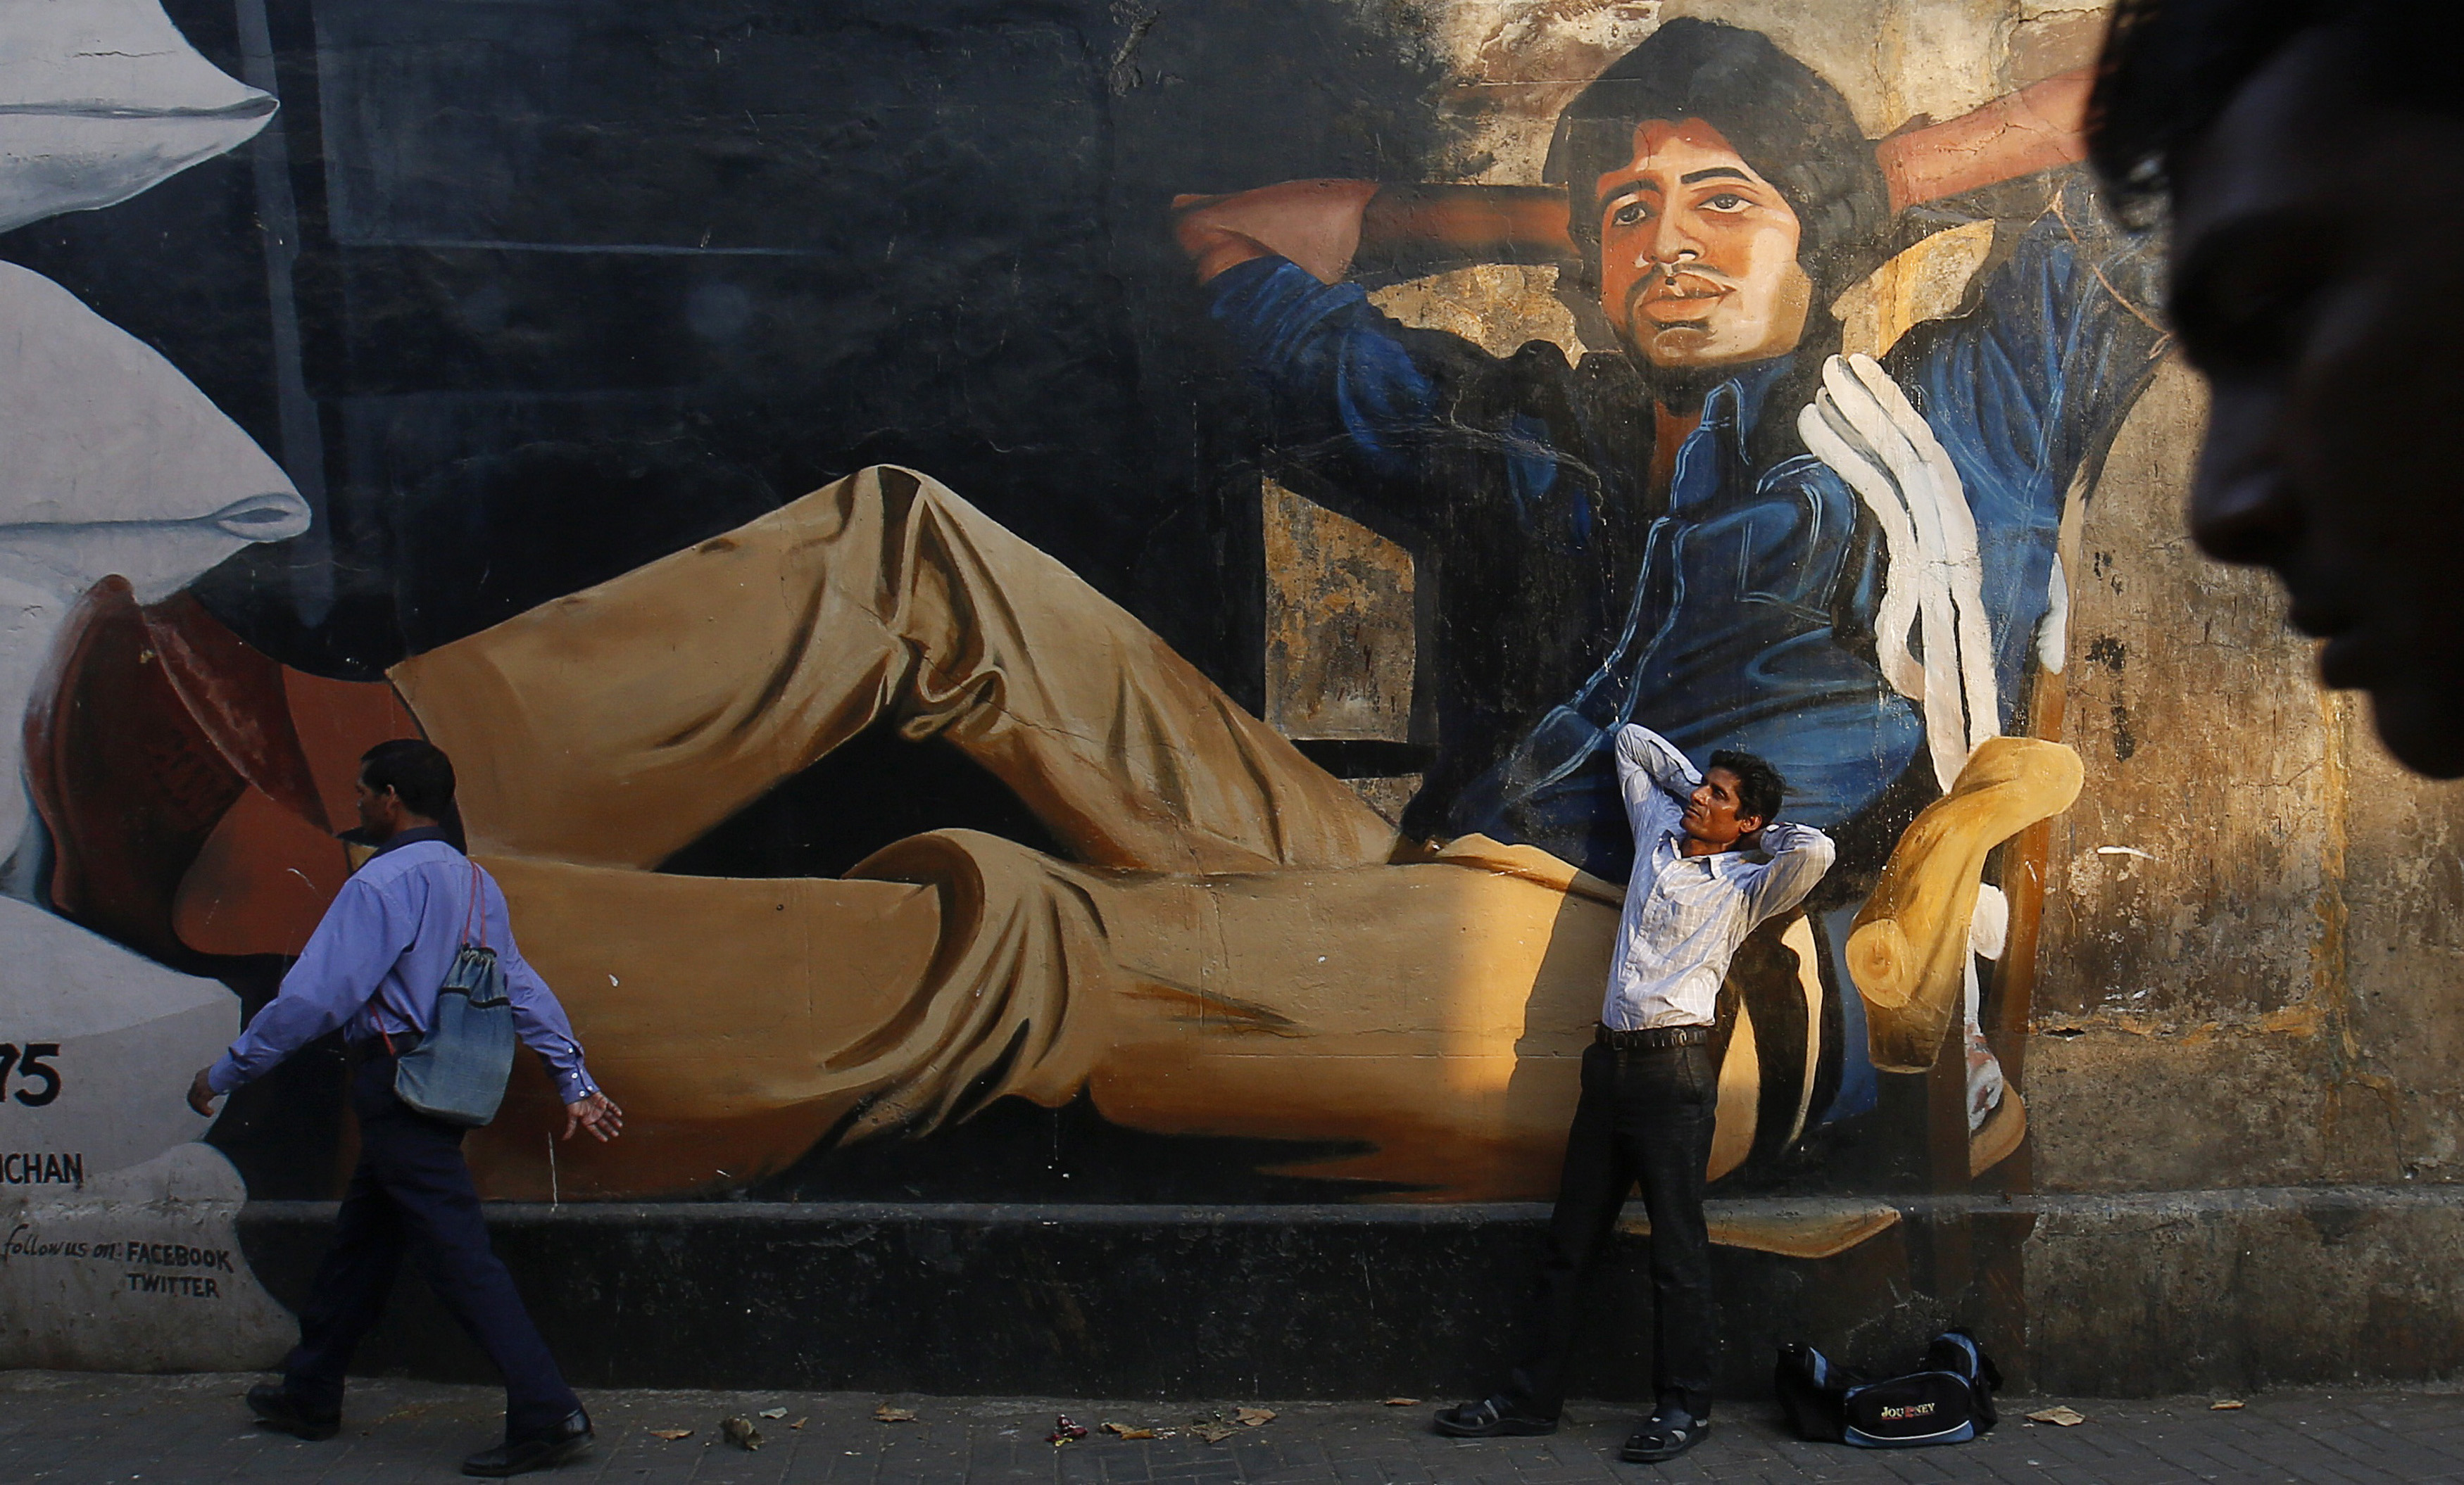 An aspiring actor, poses in front of a mural of Amitabh Bachchan in Mumbai